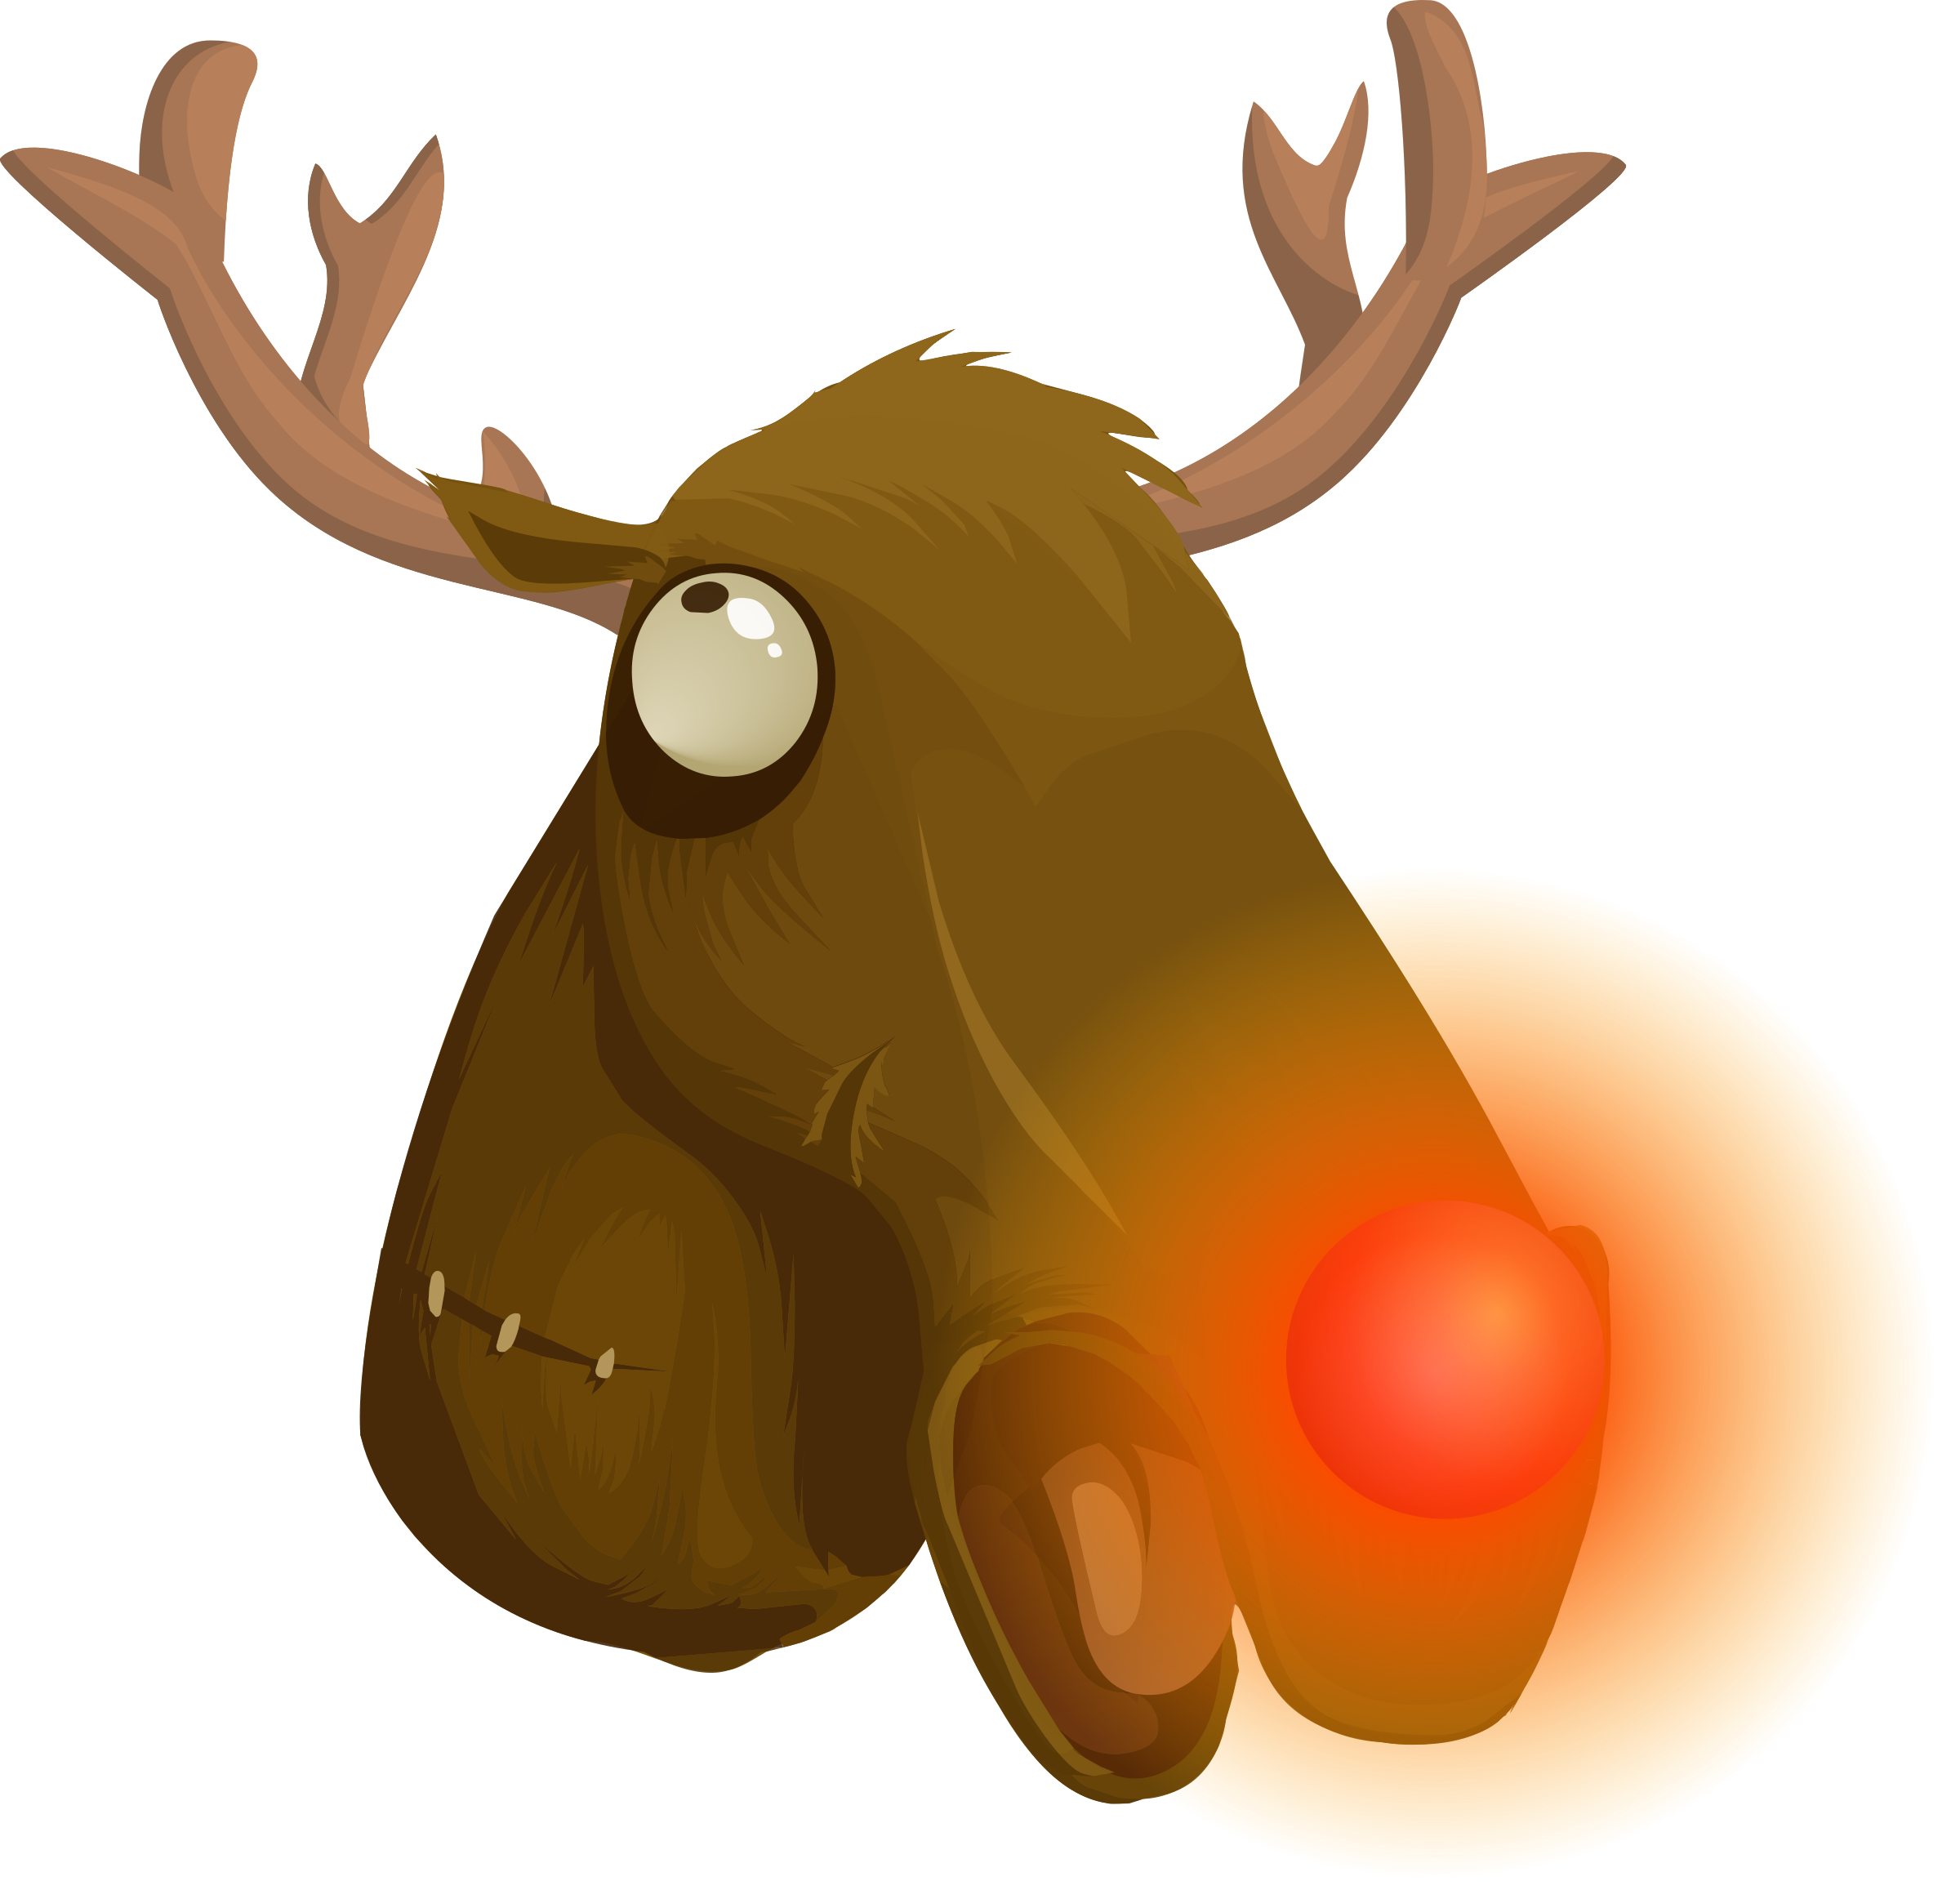 Wacky rudolf big image. Wednesday clipart whacky